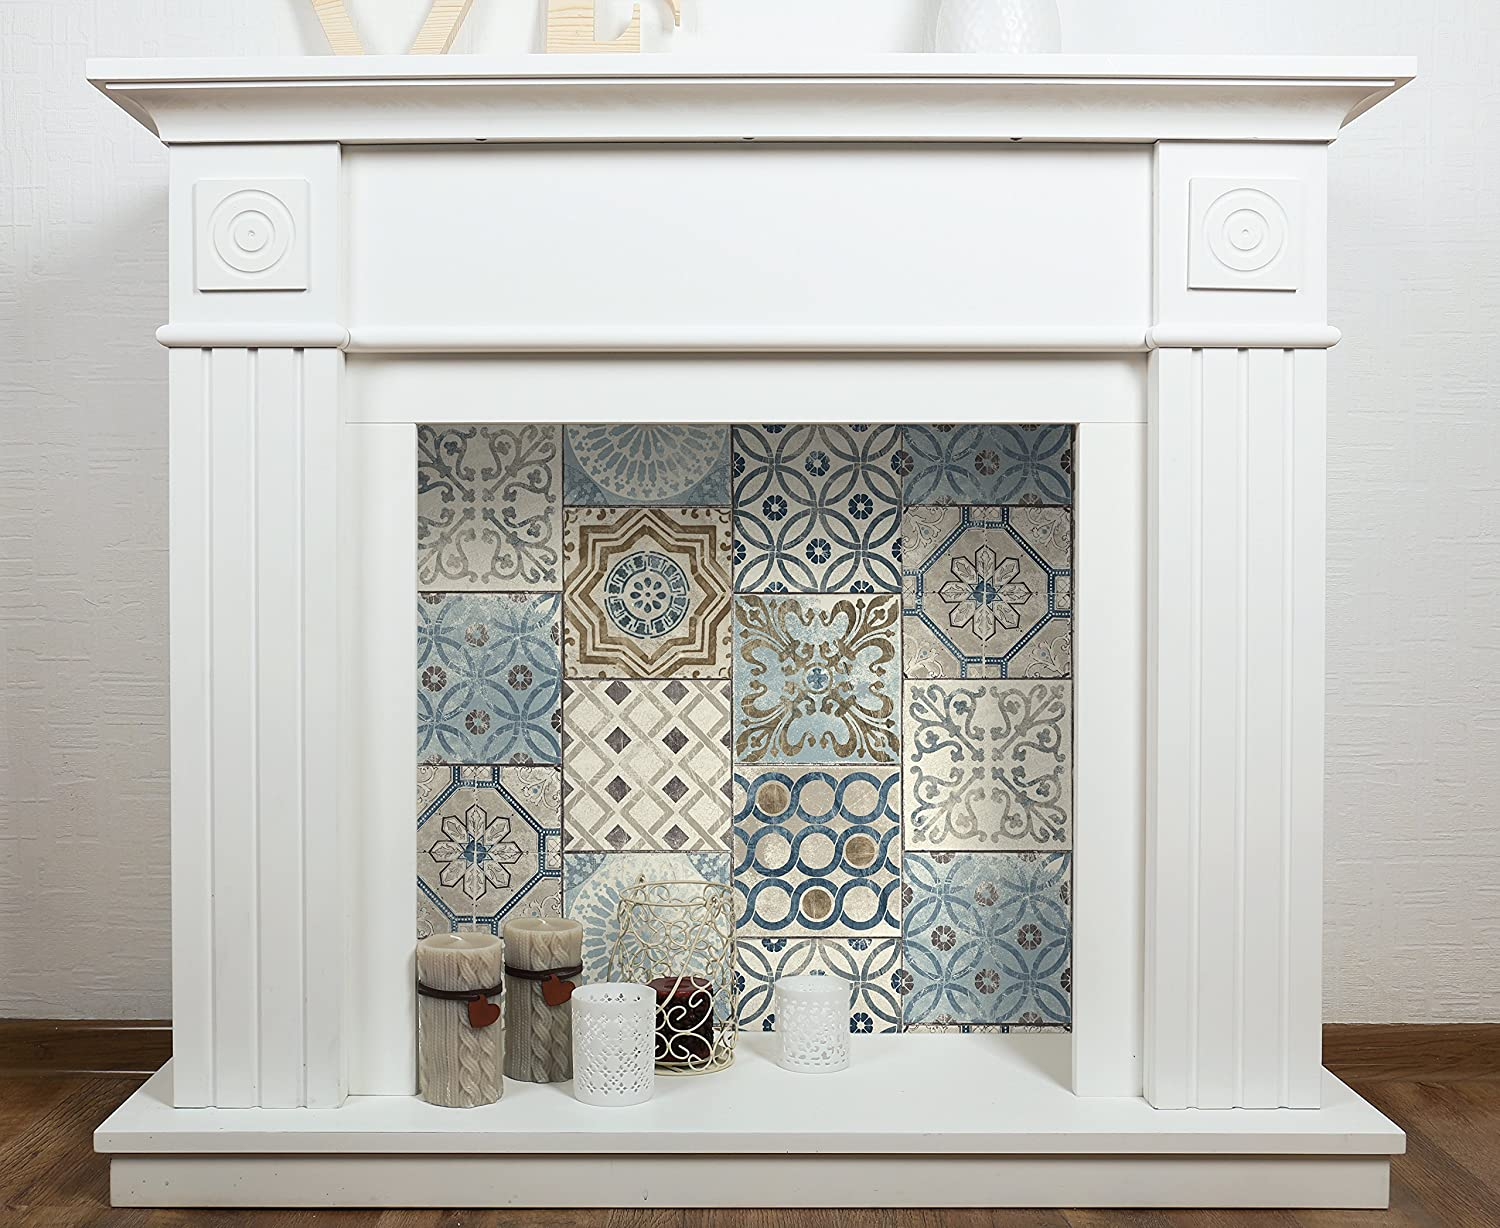 Blue, Copper /& Grey NextWall Moroccan Style Peel and Stick Mosaic Tile Wallpaper.